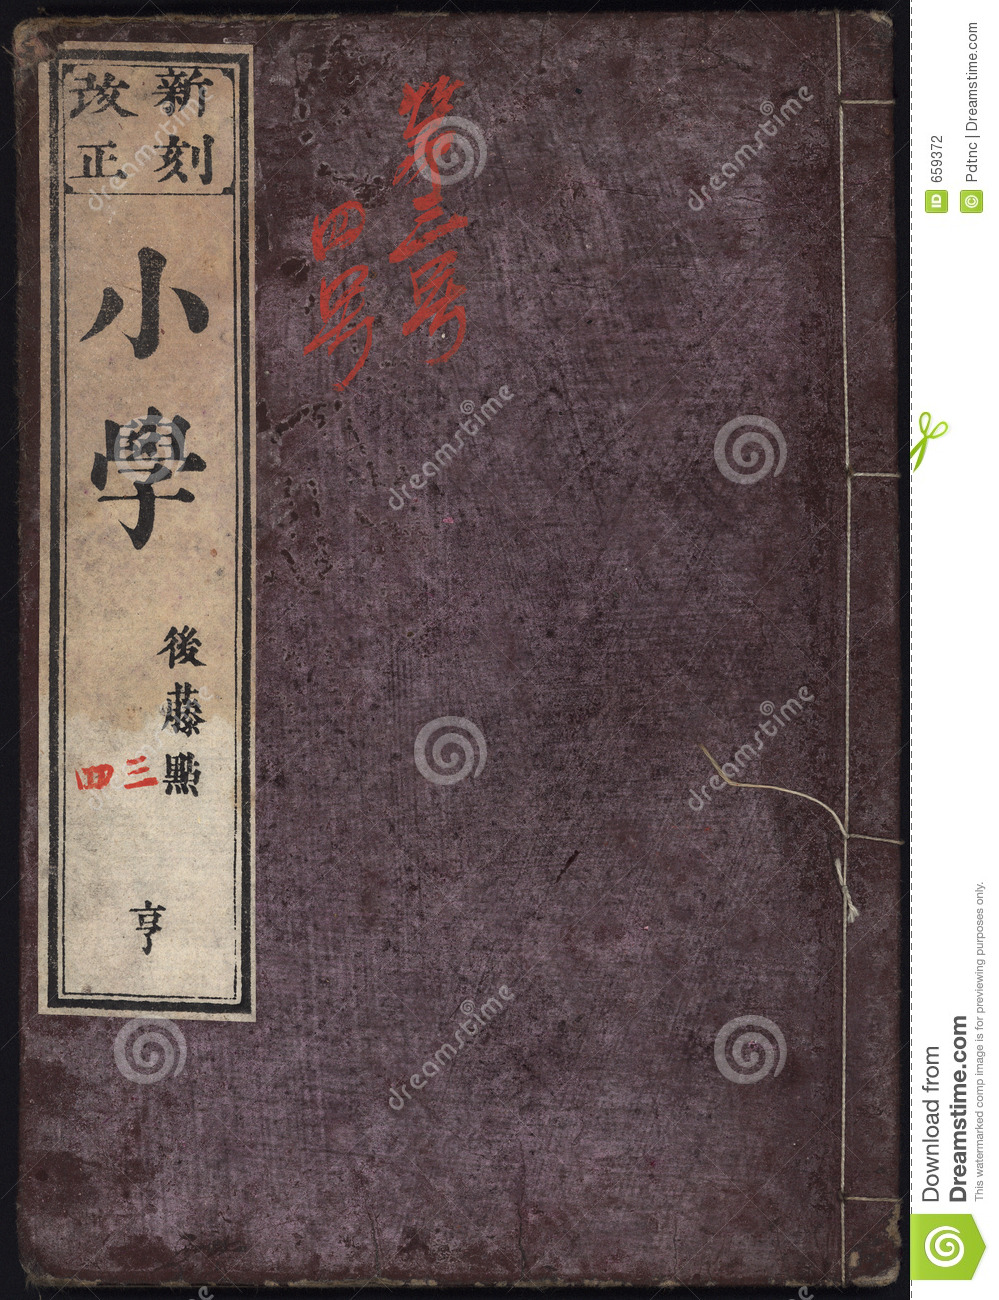 Book Cover Texture Japan ~ Japanese book front cover stock photo image of texture